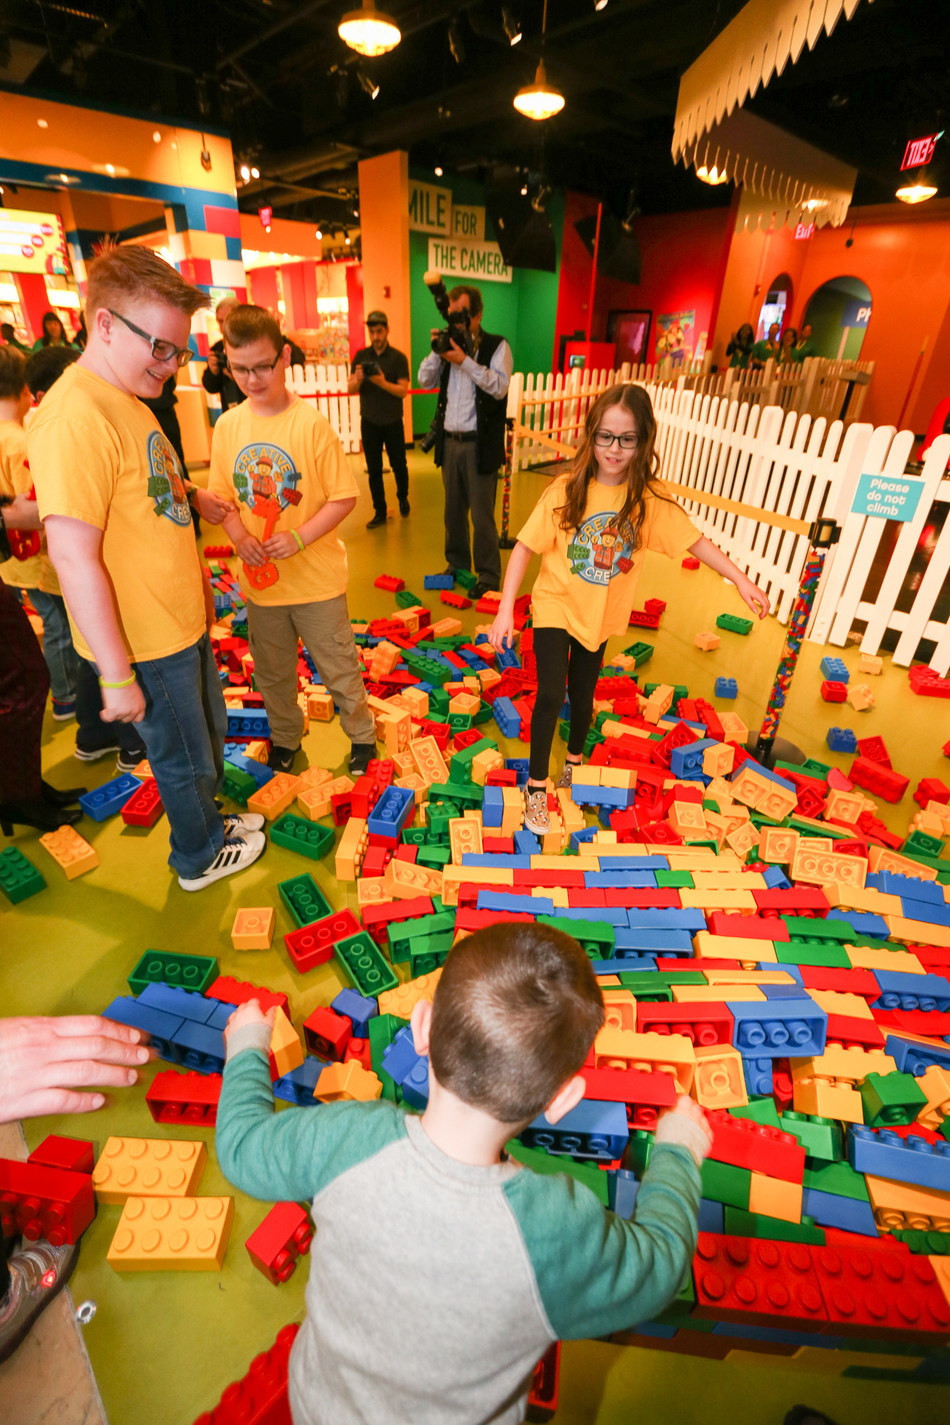 The Creative Crew breaks down the LEGO(R) wall to the only ultimate indoor LEGO(R) playground in Pennsylvania, located at Plymouth Meeting Mall.